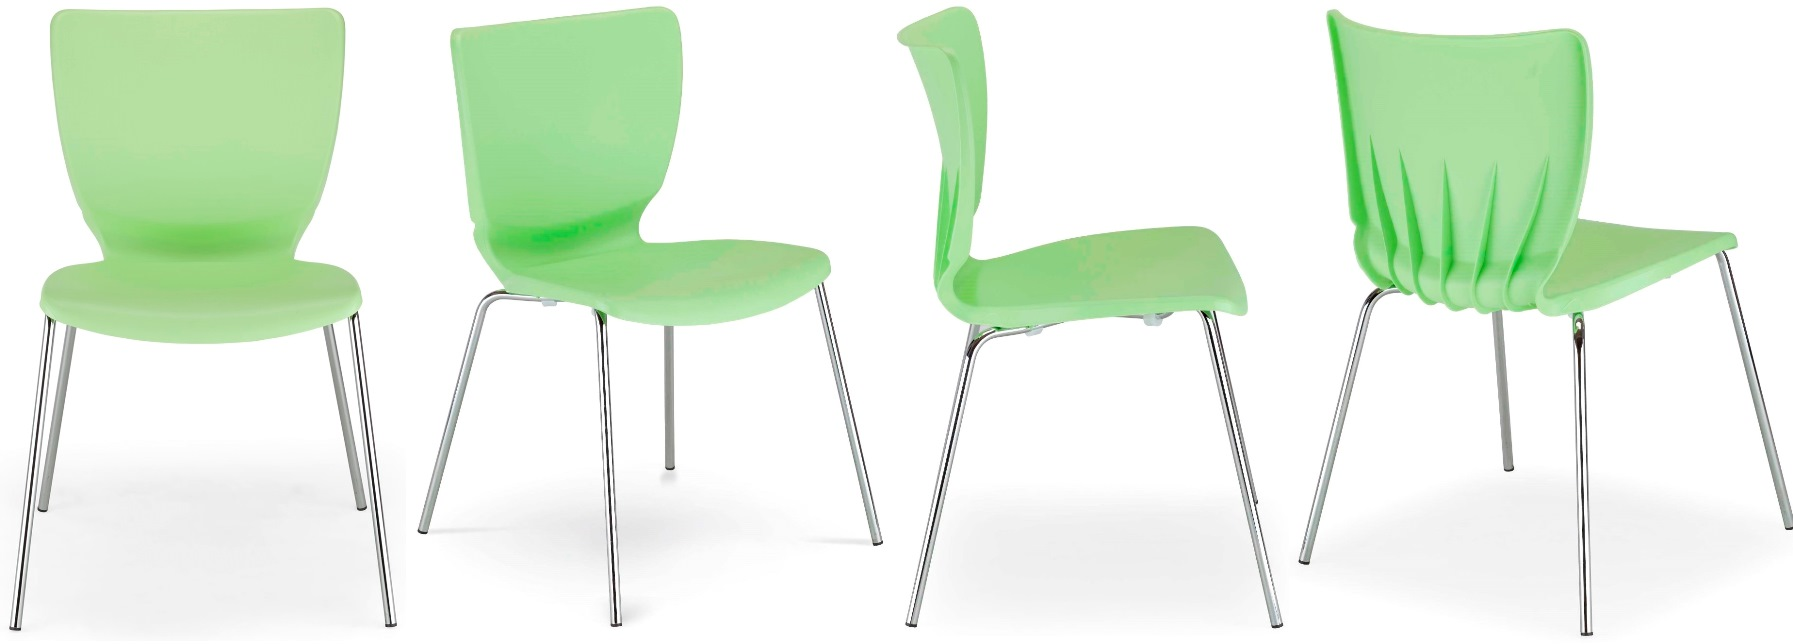 Fiuggi Bistro Chair Group